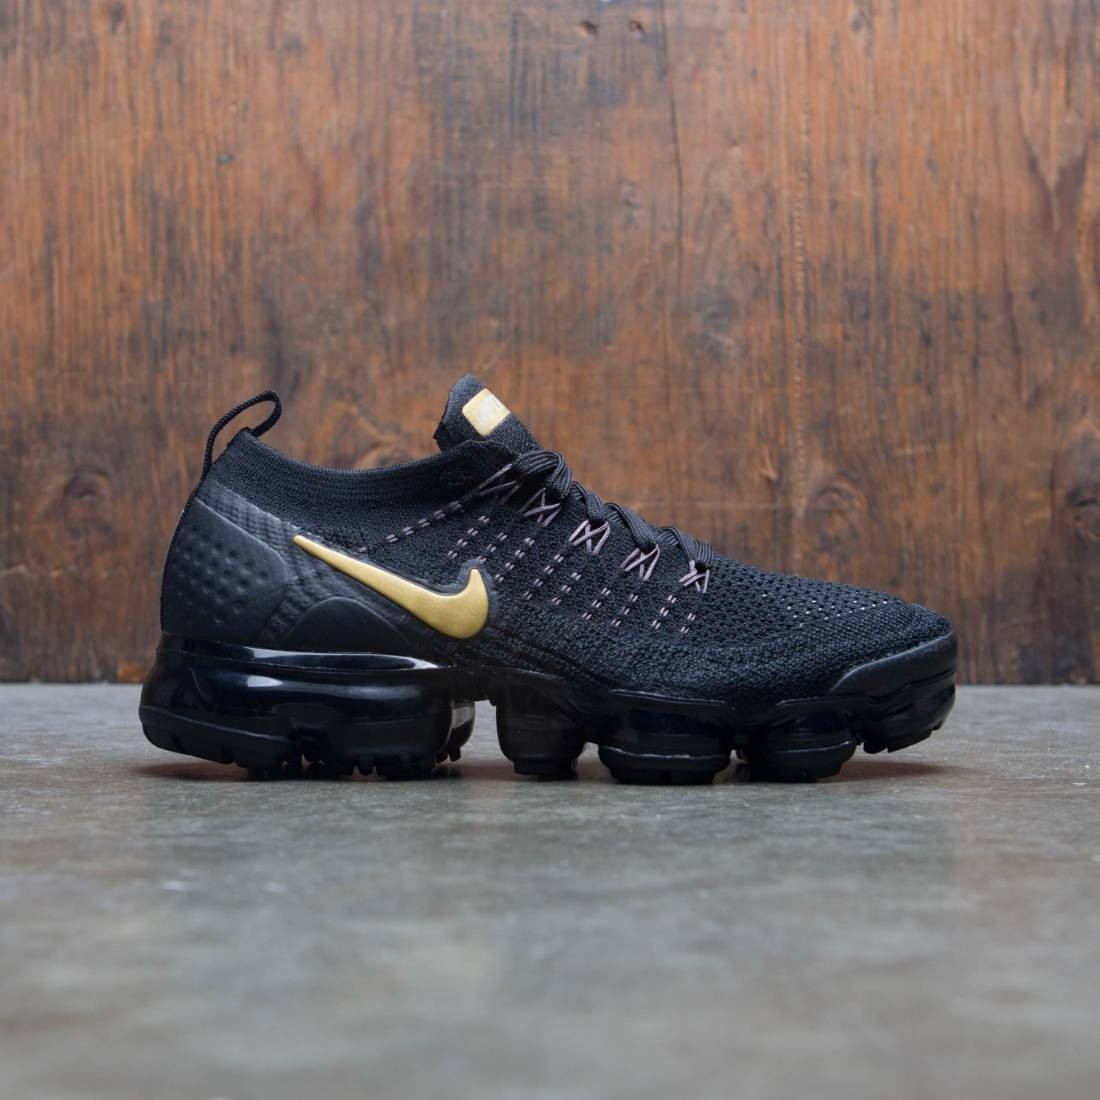 new concept 5a0c3 d13f8 Nike Women Air Vapormax Flyknit 2 (black / metallic gold-mtlc platinum)